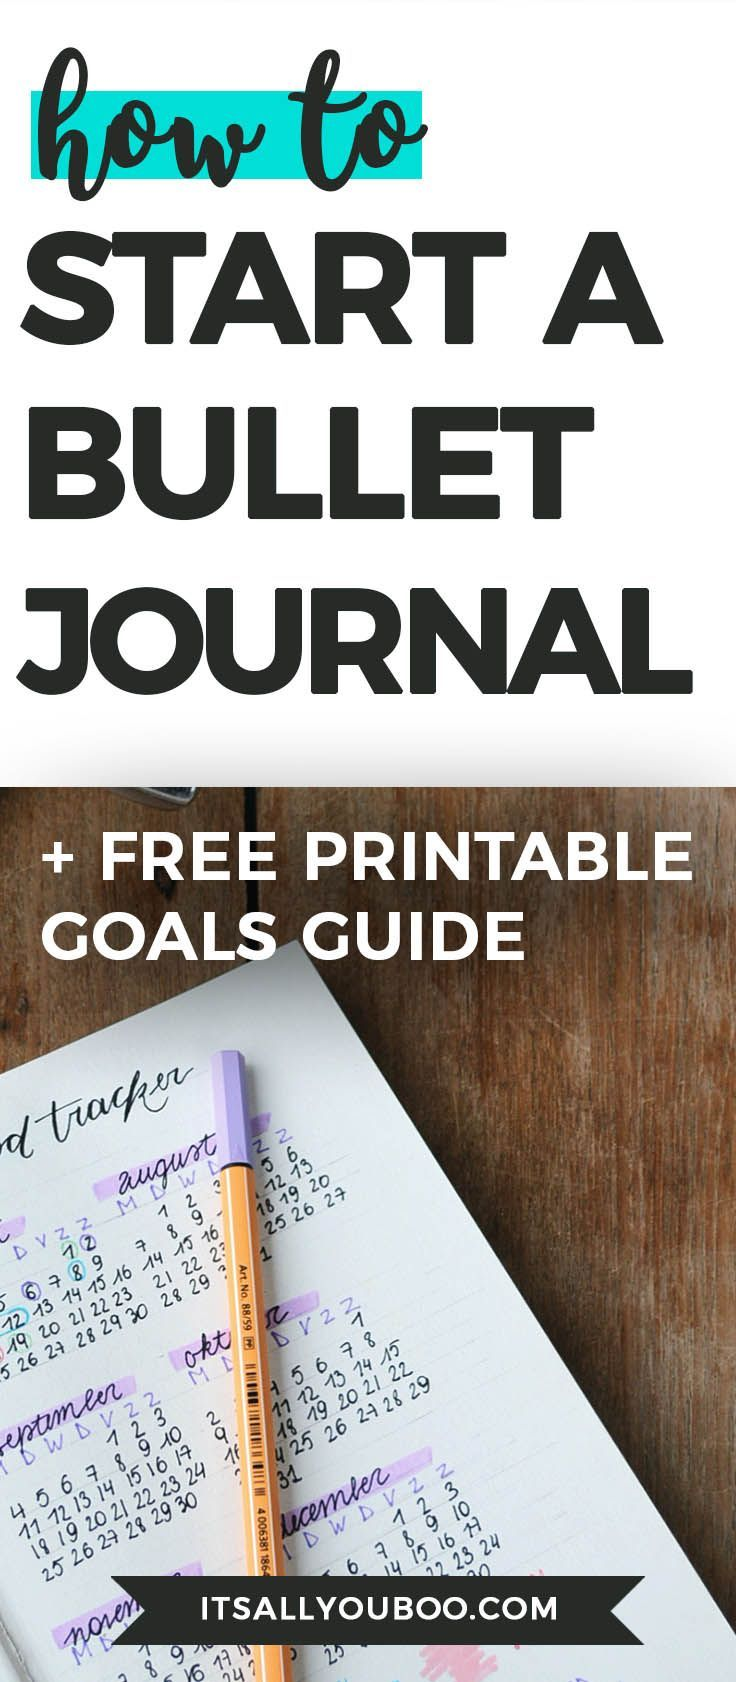 Want to know how to start a bullet journal? Need inspiration for your bullet journal layout and setup? Click here for your beginner's guide to bullet journaling, with ideas for pages, pens, journals and more. #bulletjournal